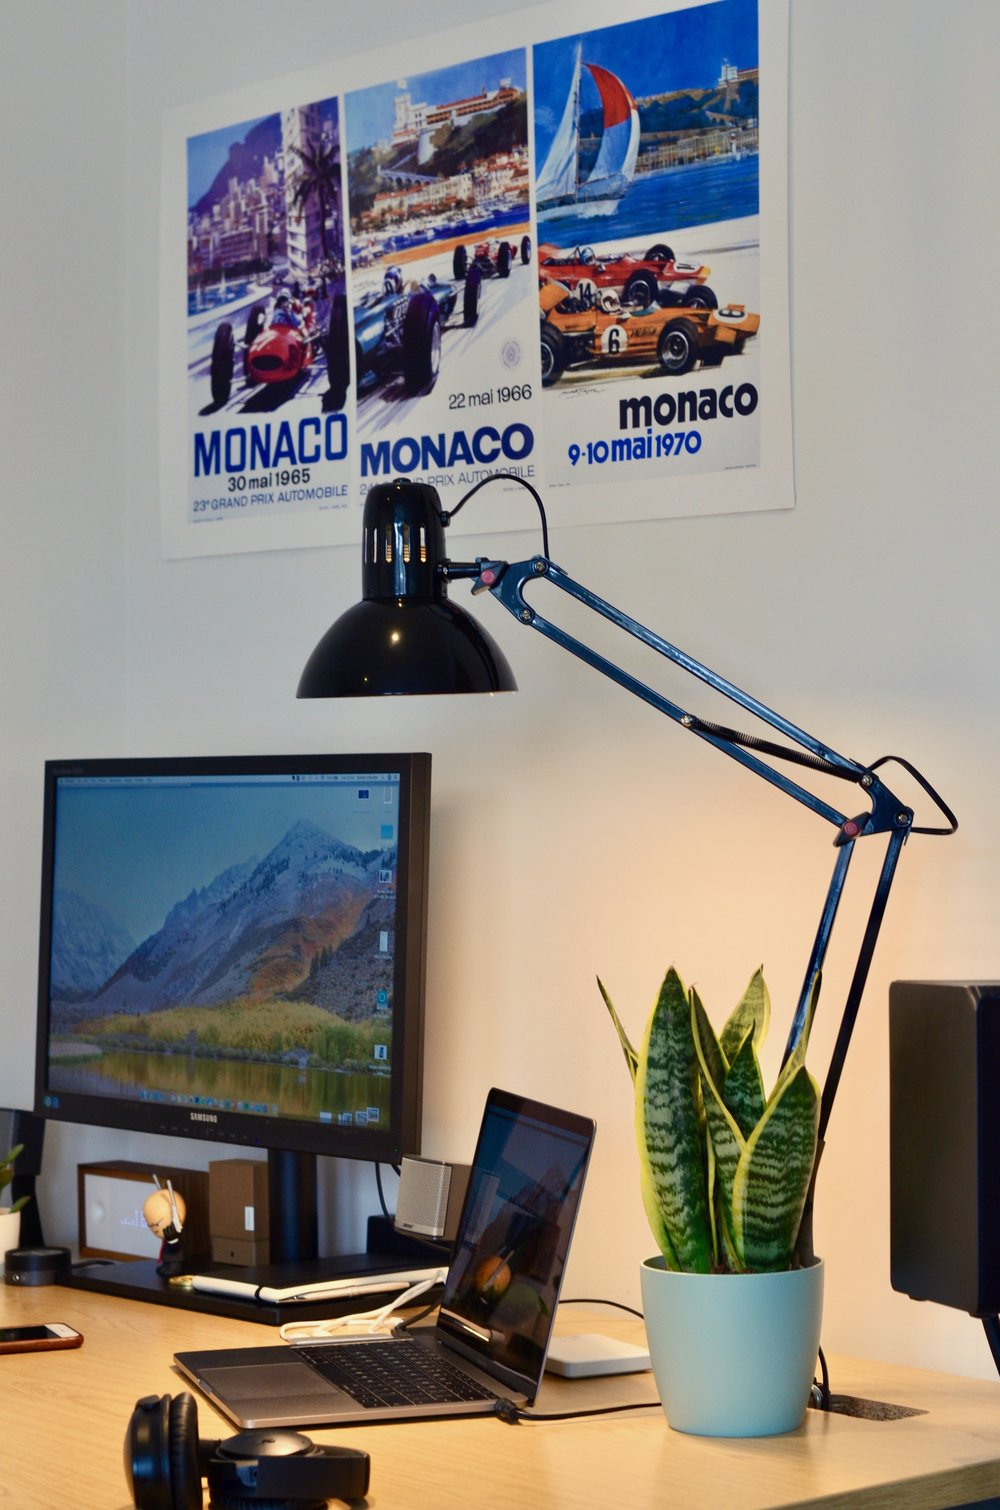 Always loved classic Monaco GP posters and think this collection really looks great